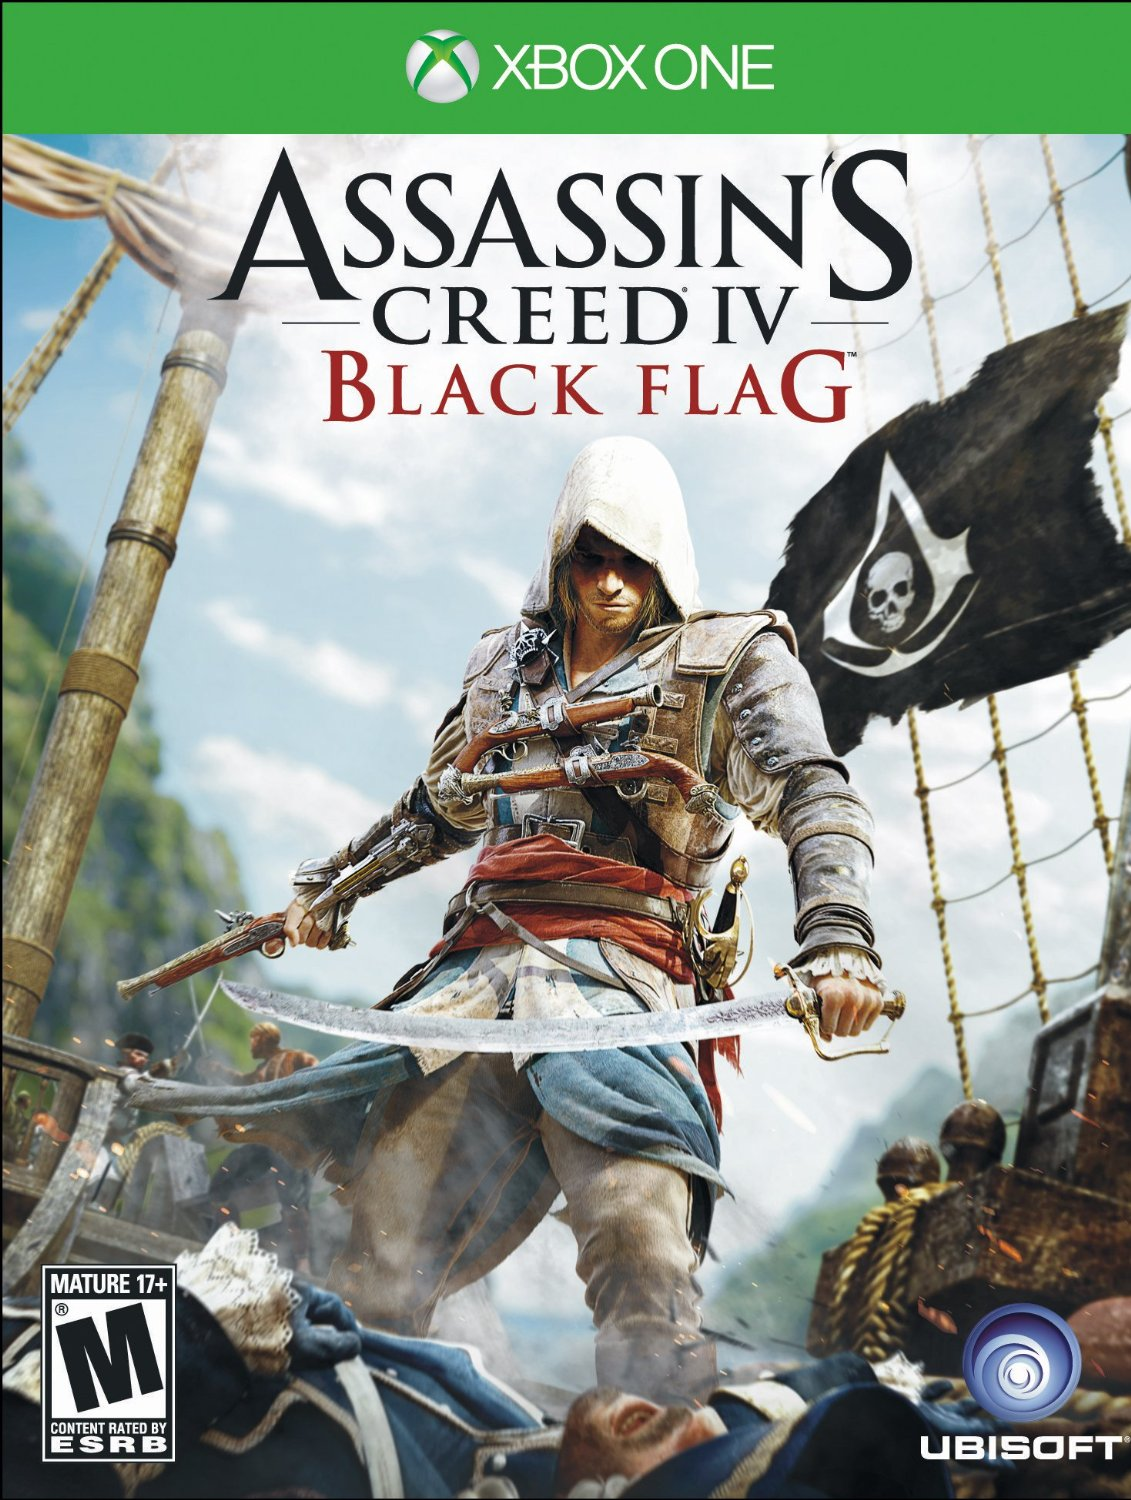 Assassin's Creed 4 (IV) Black Flag (Xbox One)